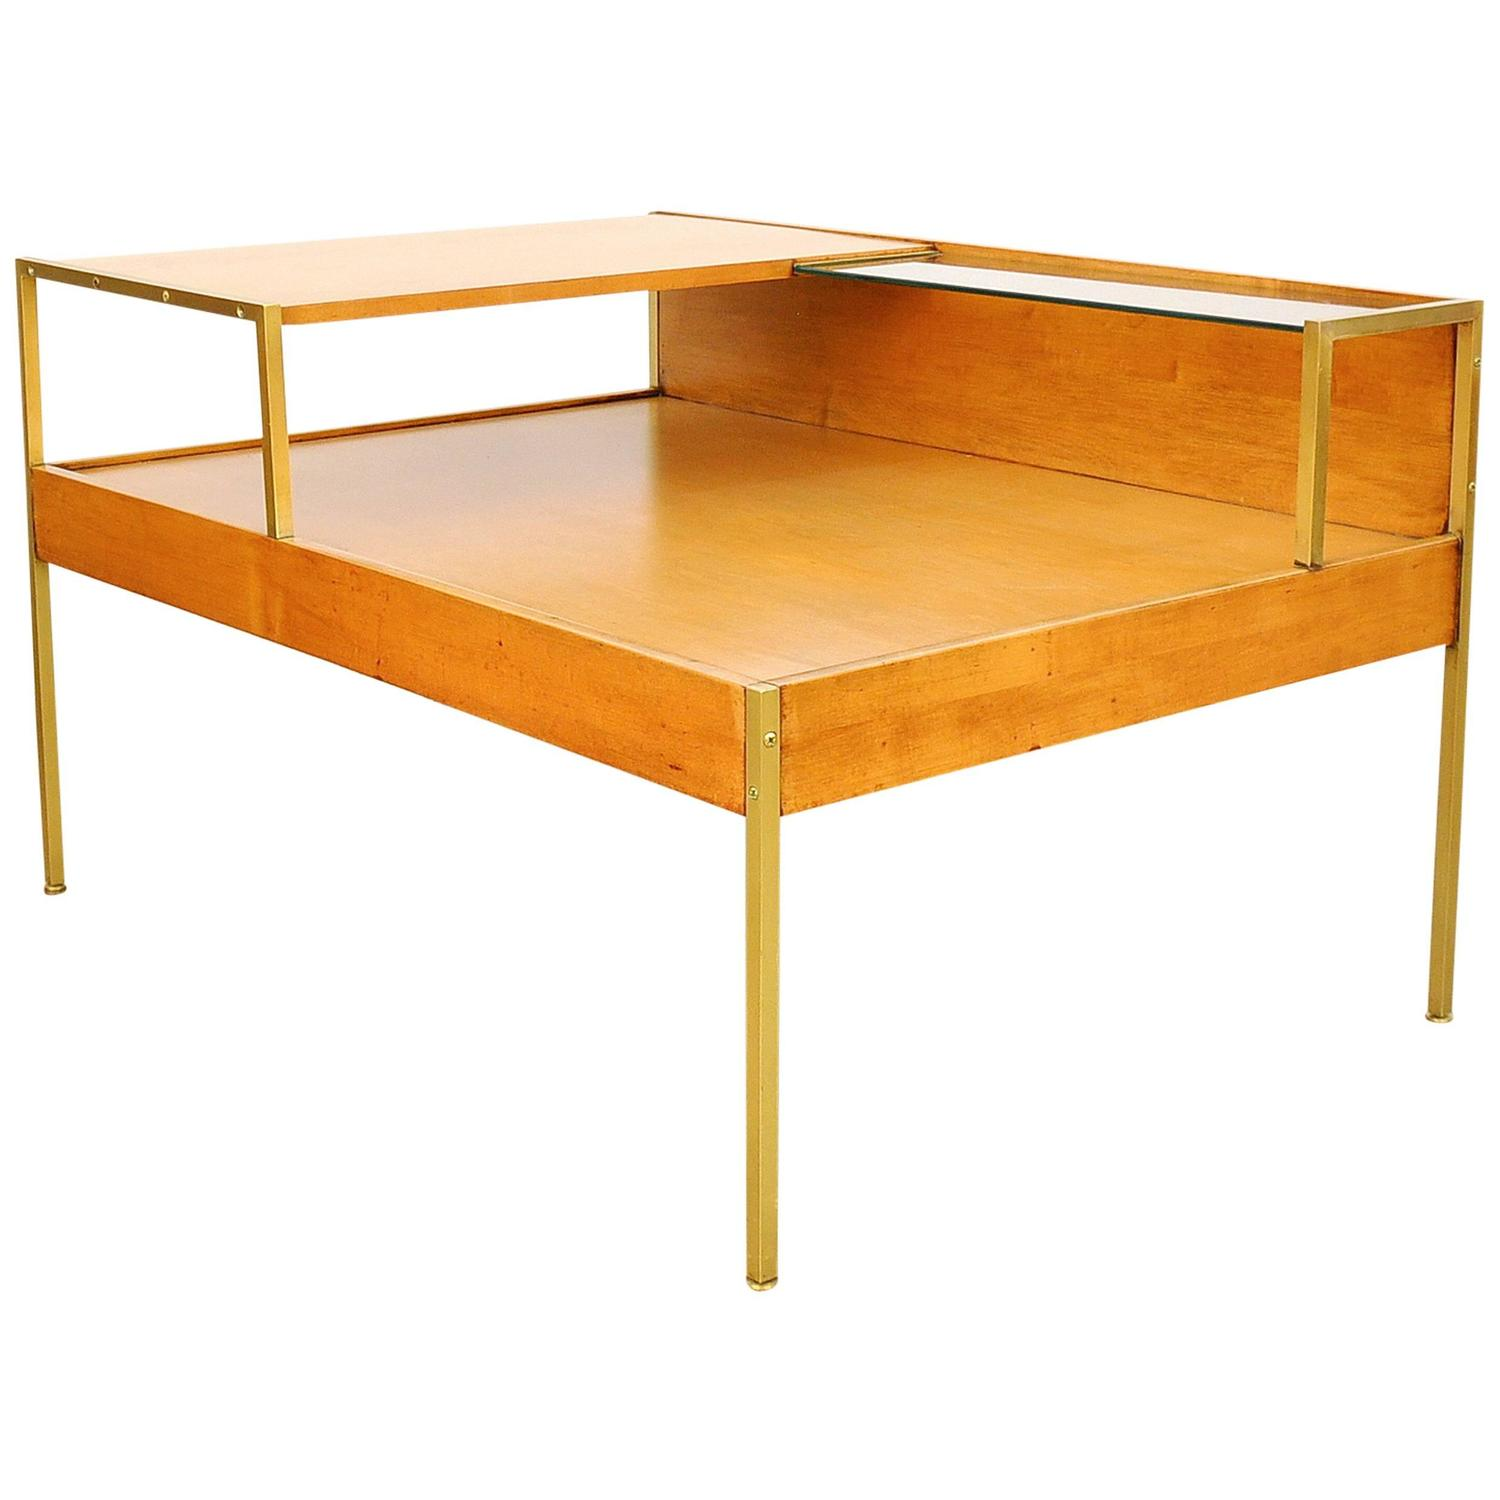 Milo Baughman For Murray Furniture Maple And Brass Coffee Table Circa 1955 At 1stdibs